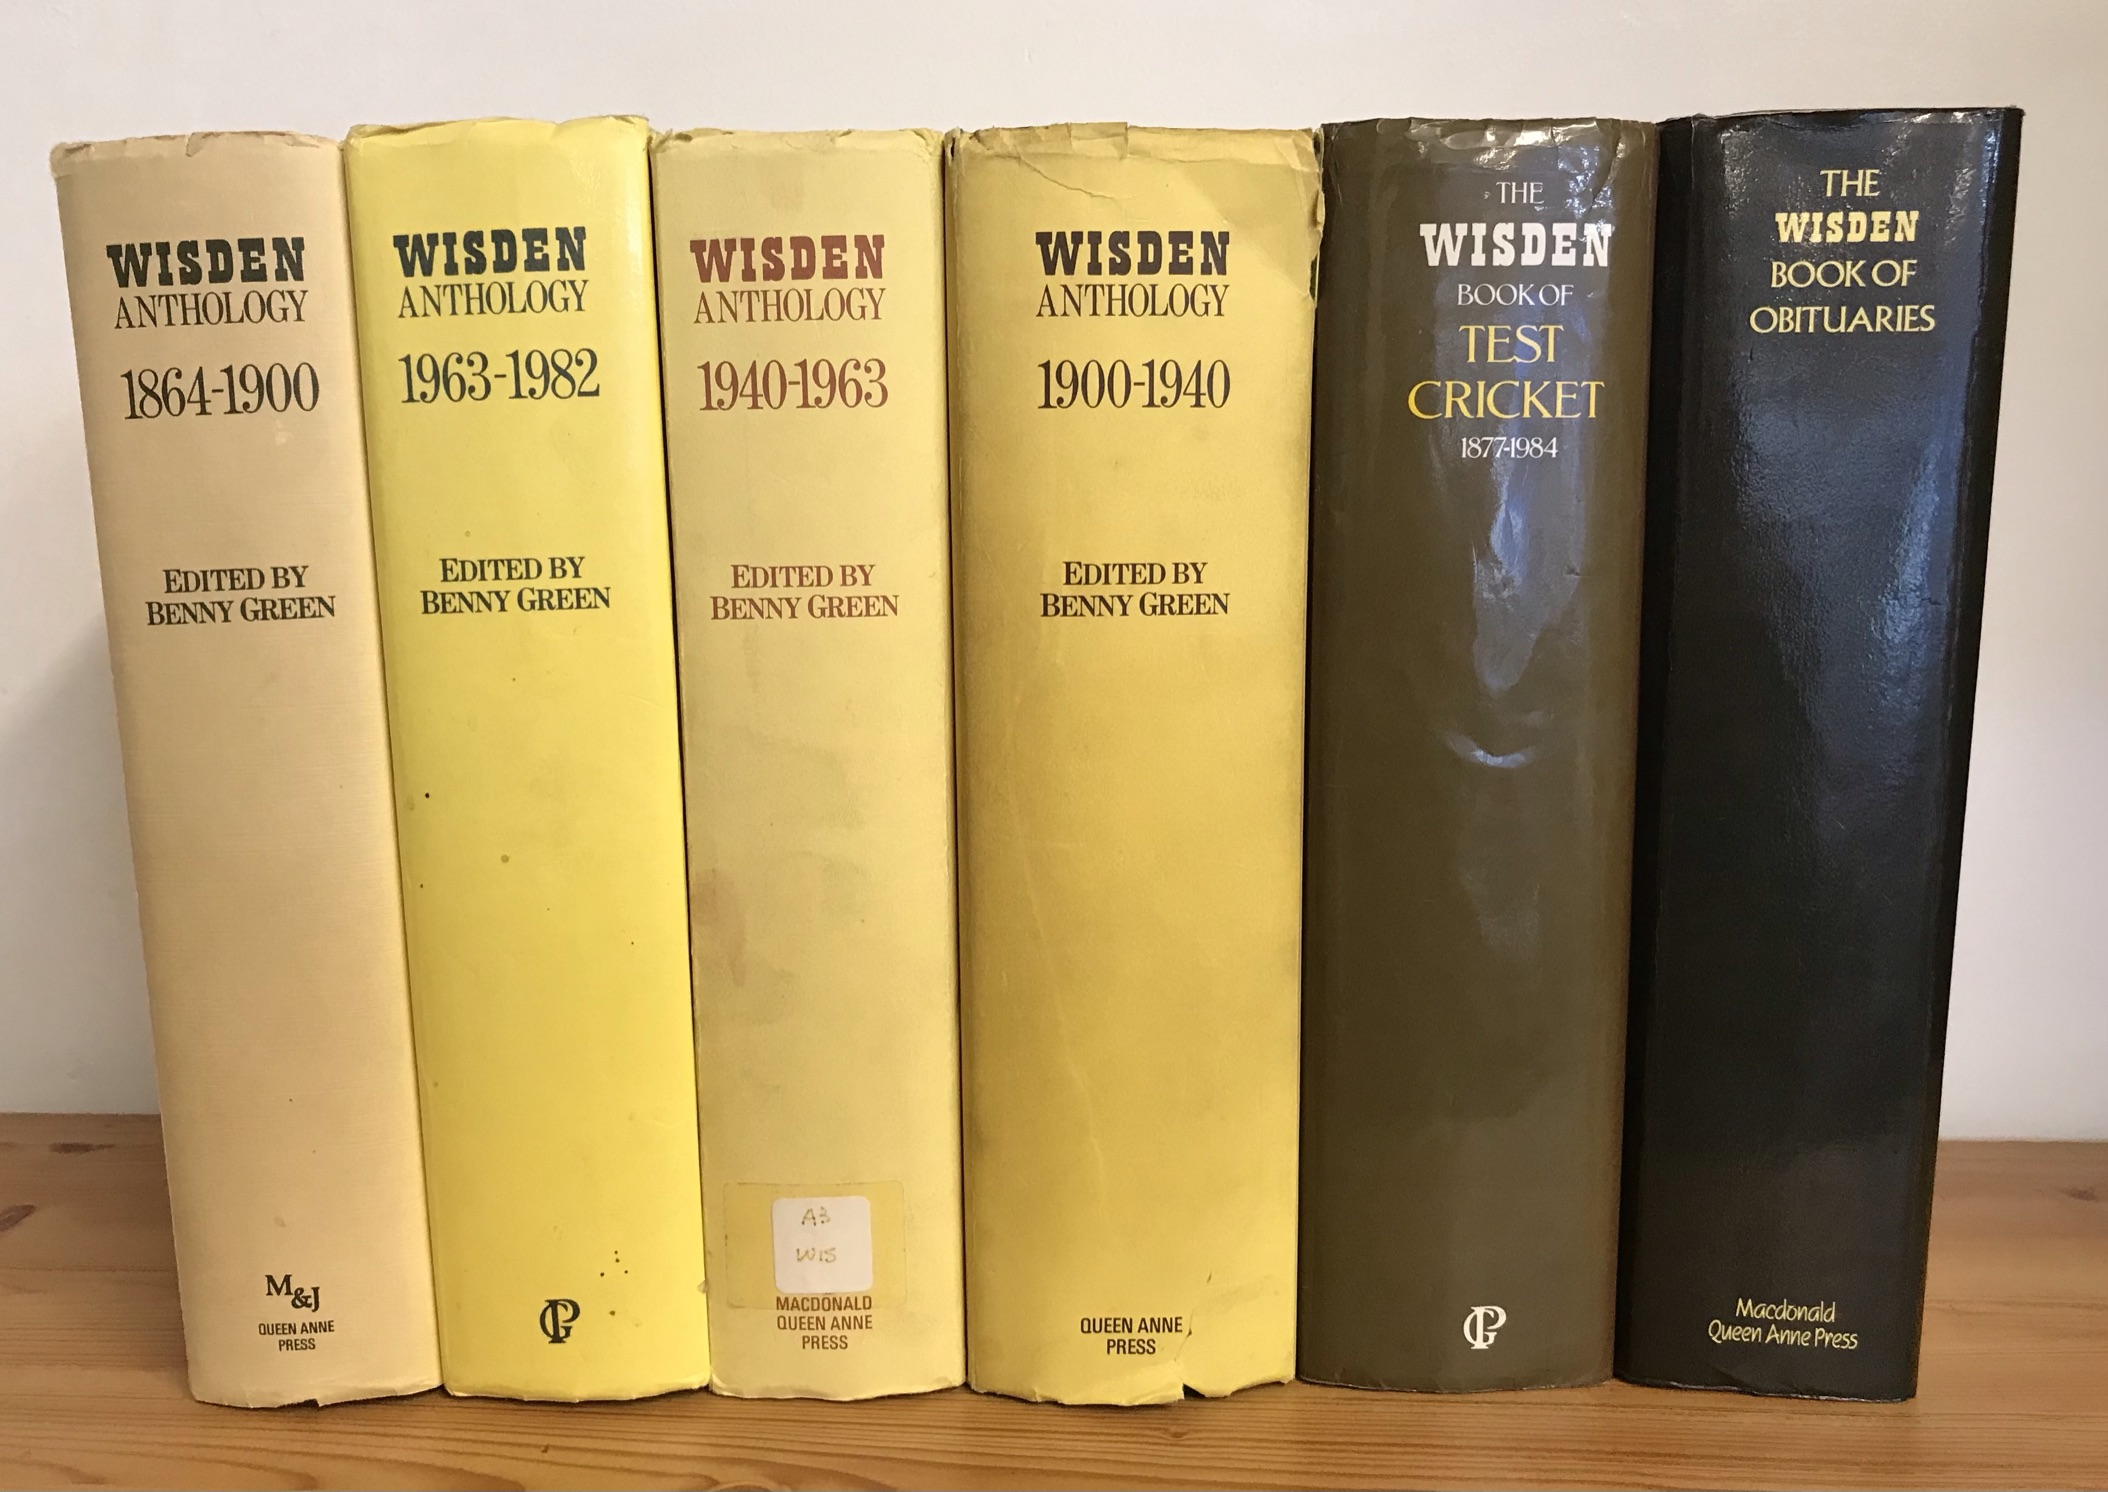 Cricket Wisden Anthologies, Book of Obituaries 1892-1985 and The Wisden Book of Test Cricket 1877-